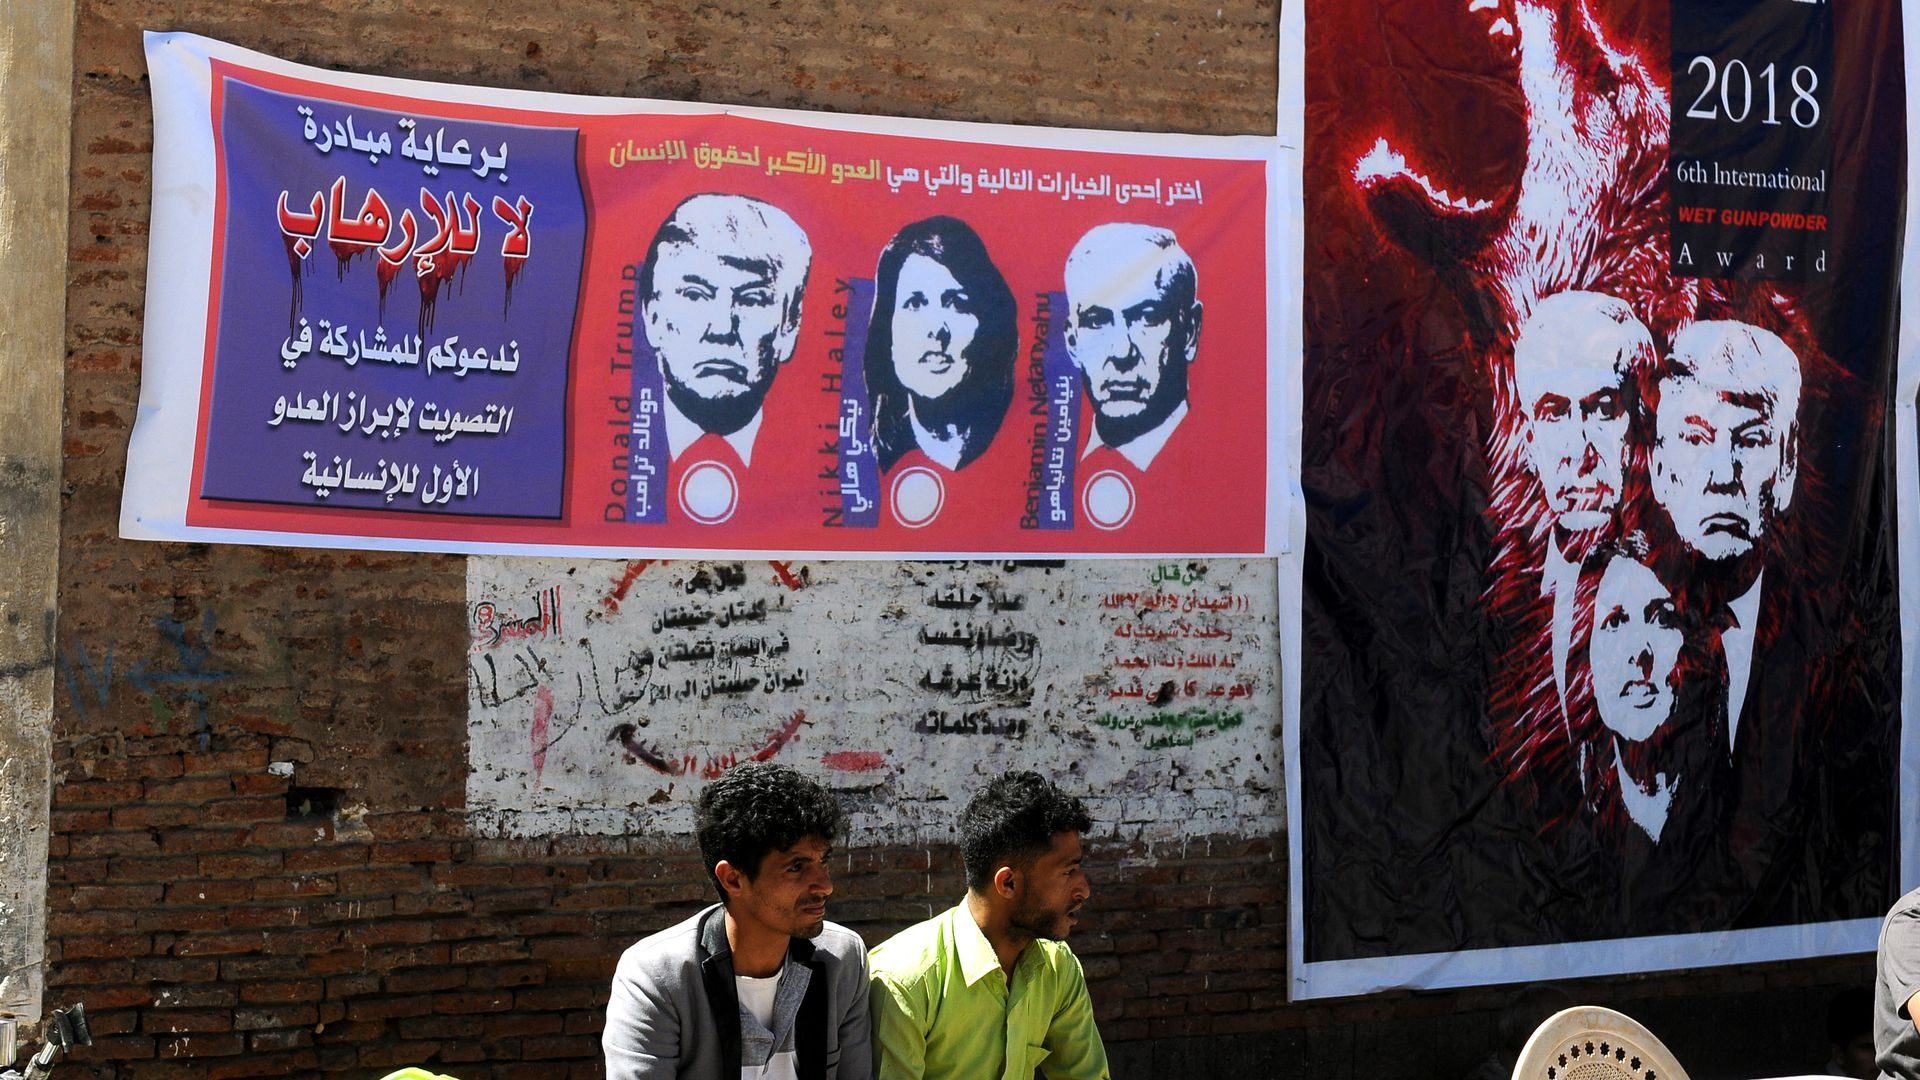 Two Yemeni men under banners showing Donald Trump, Benjamin Netanyahu, and Nikki Haley.